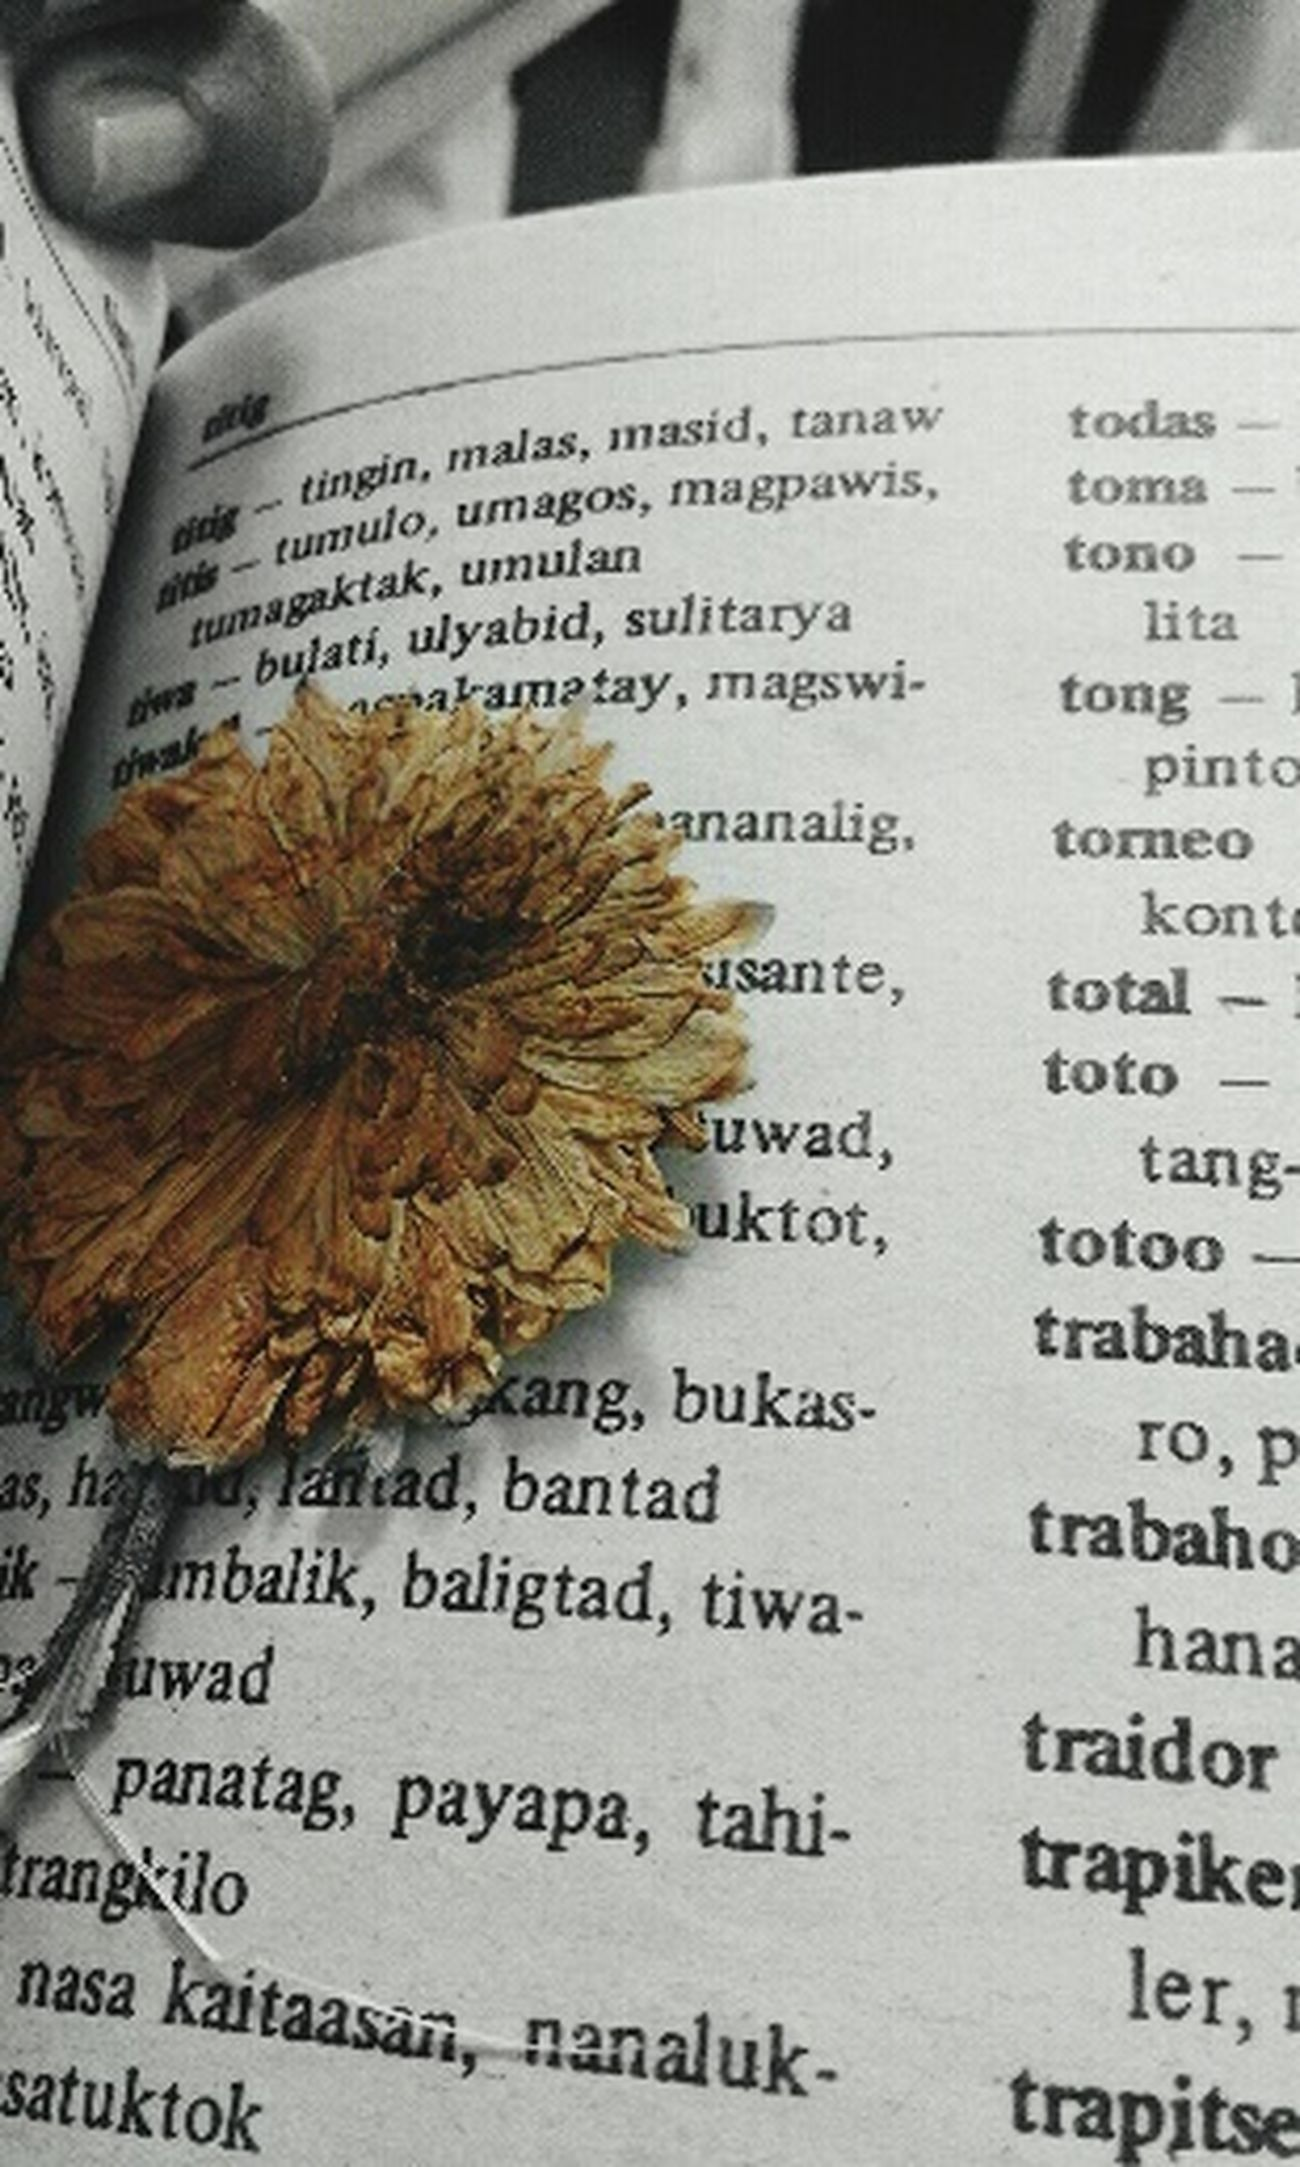 No People Handwriting  Paper Day Flower Flowers Flower Collection EyTexte Communication Indoors  Close-up